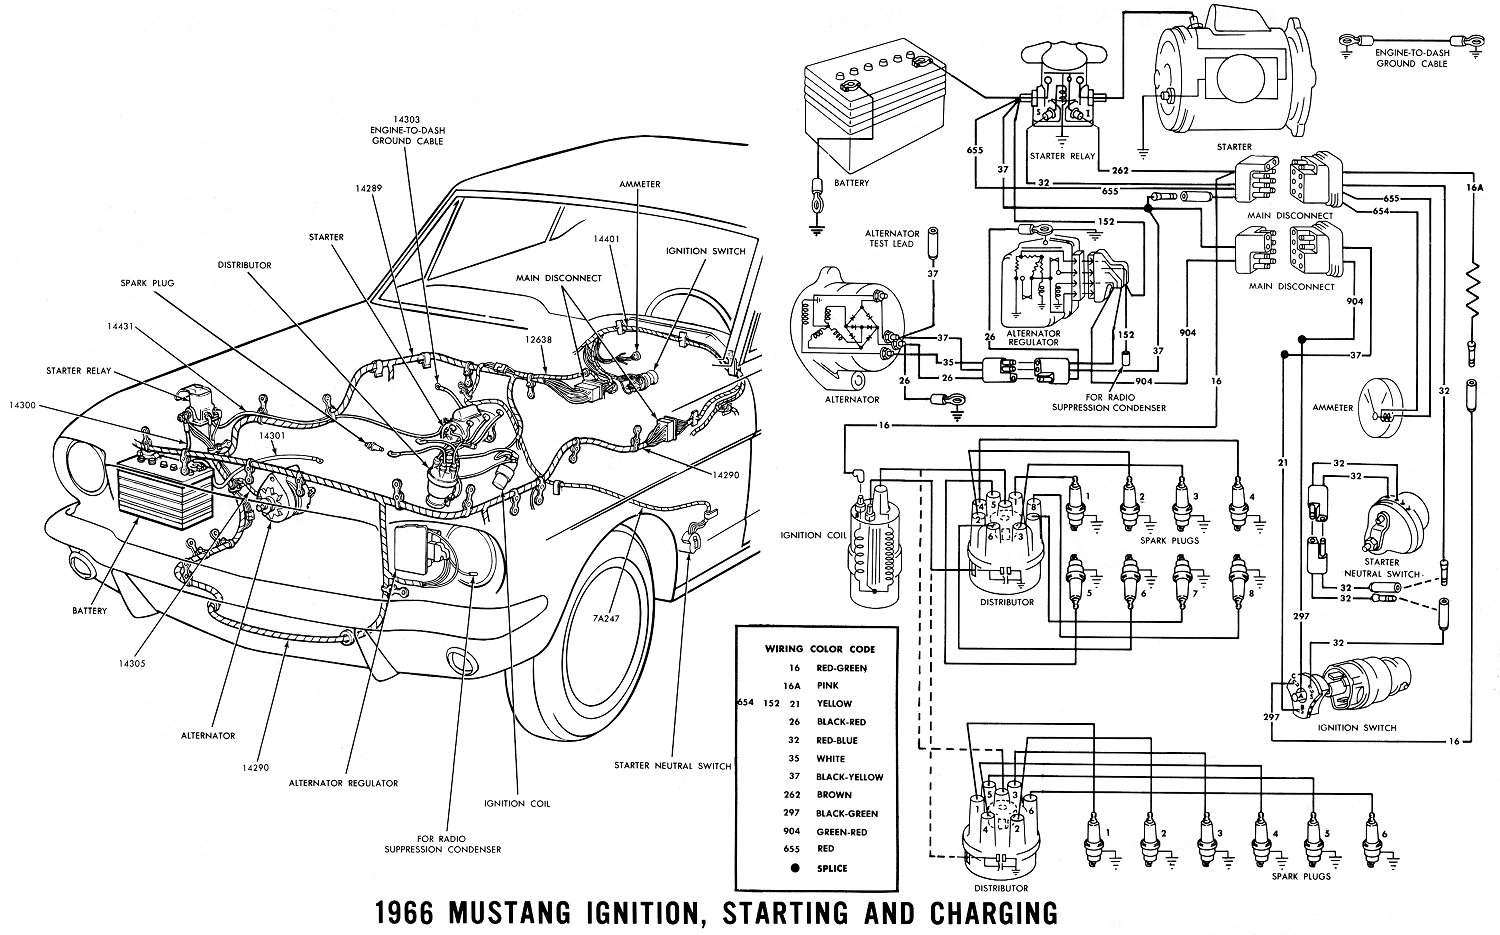 Coloring further 1966 Mustang Wiring Diagrams furthermore Tag Video further Toyota Relay Diagram also 1966 Chevy Impala Starter Diagram. on 64 corvette headlamp wiring diagram